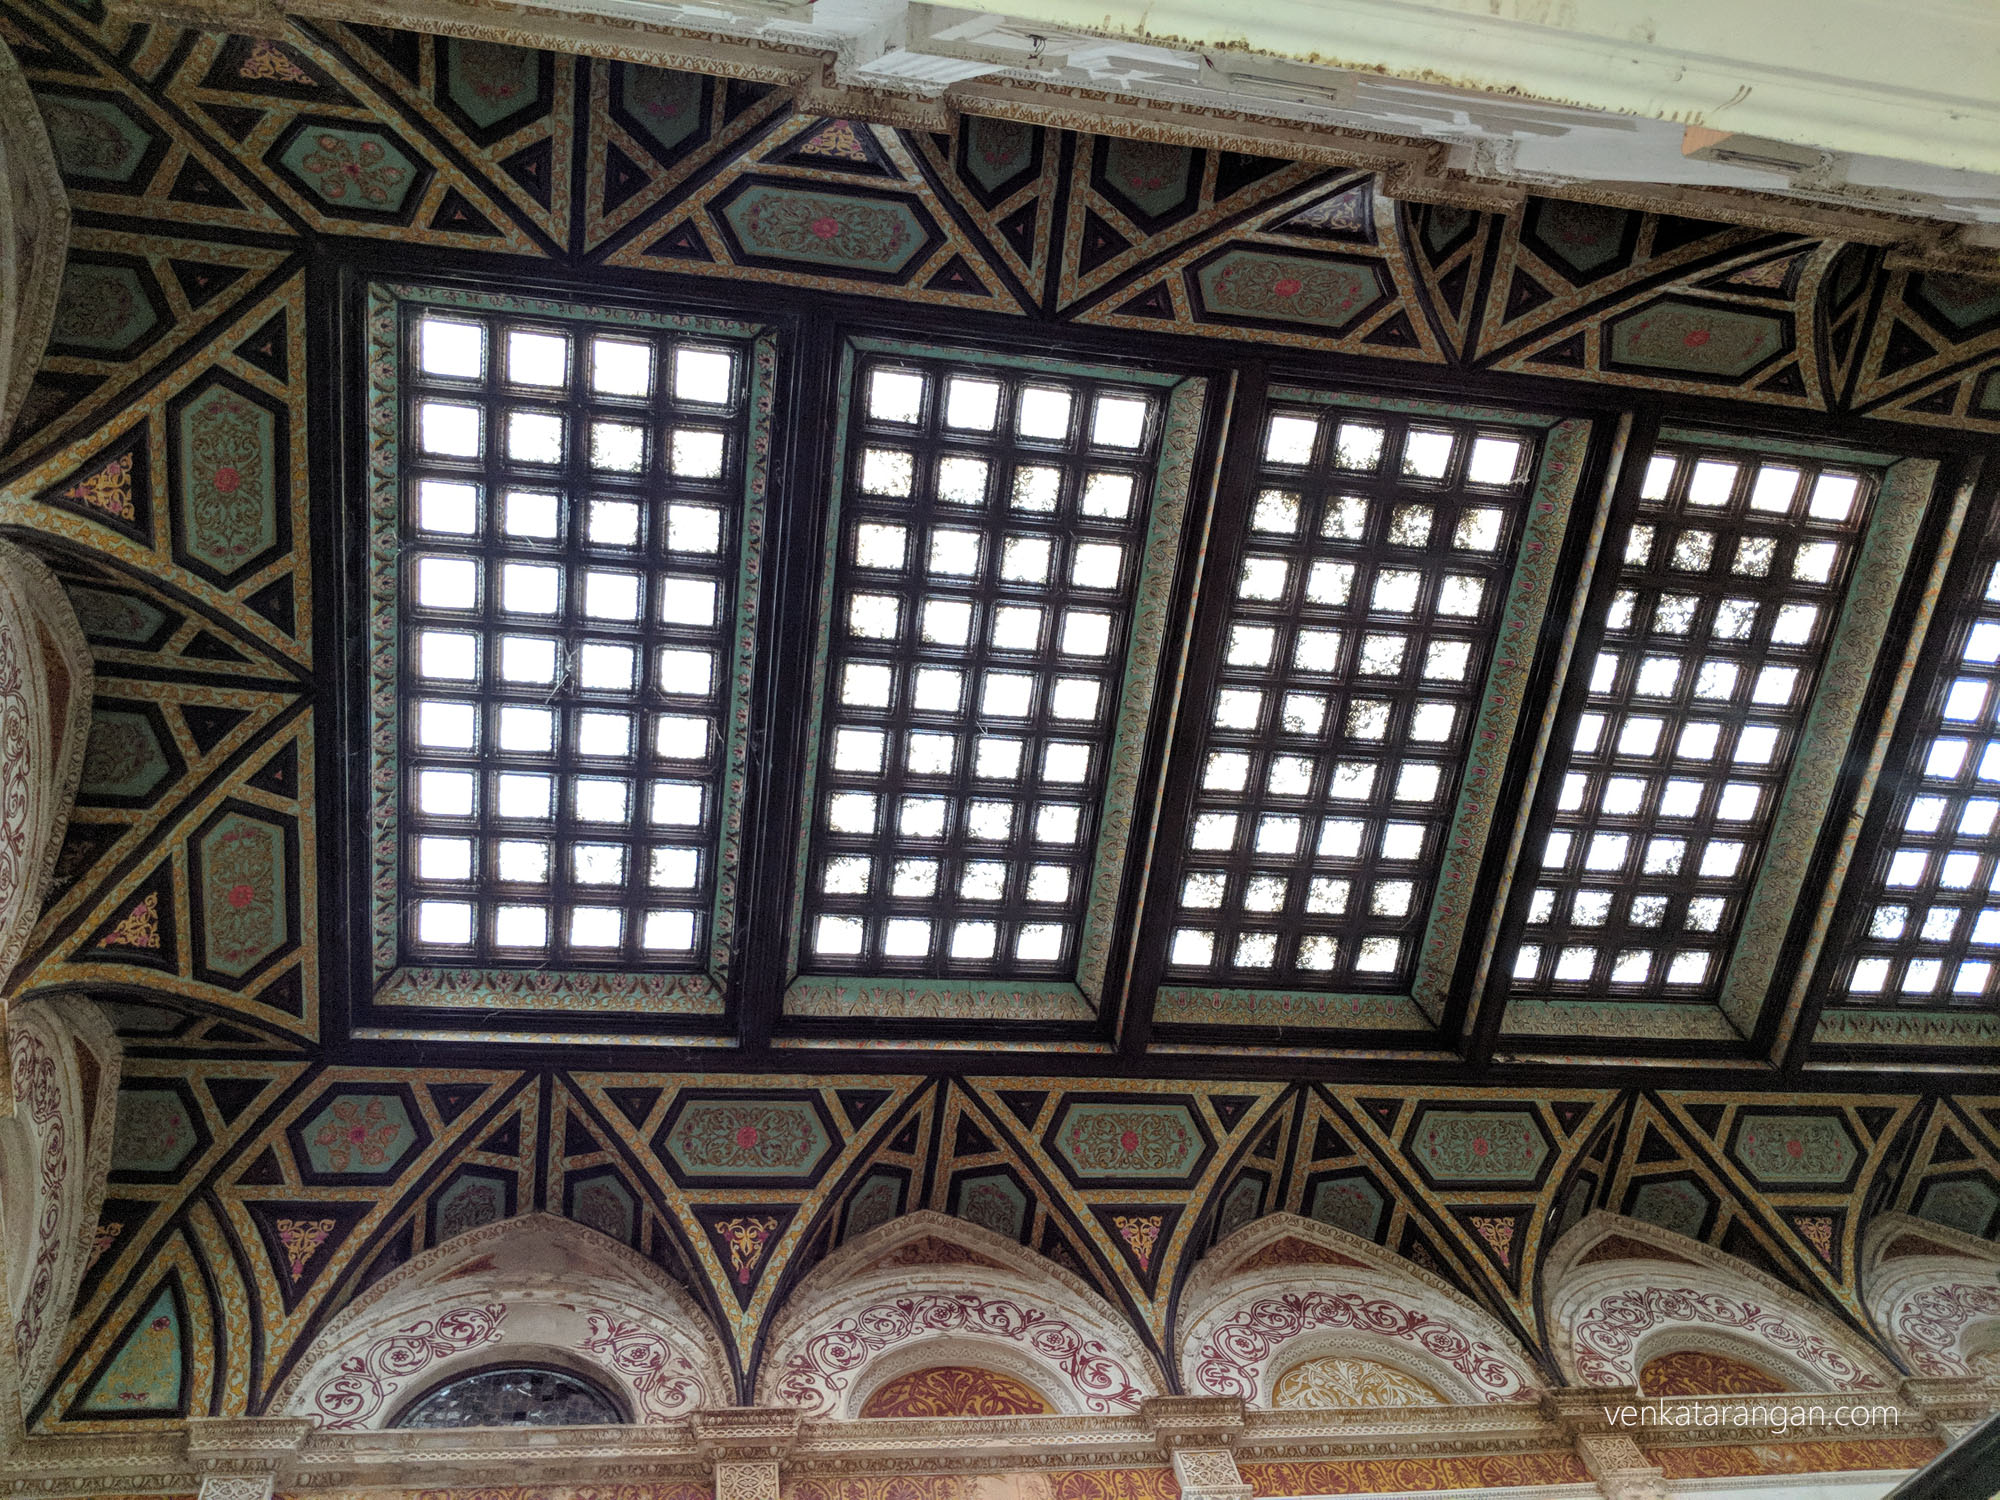 Intricate designs and glass work on the ceiling